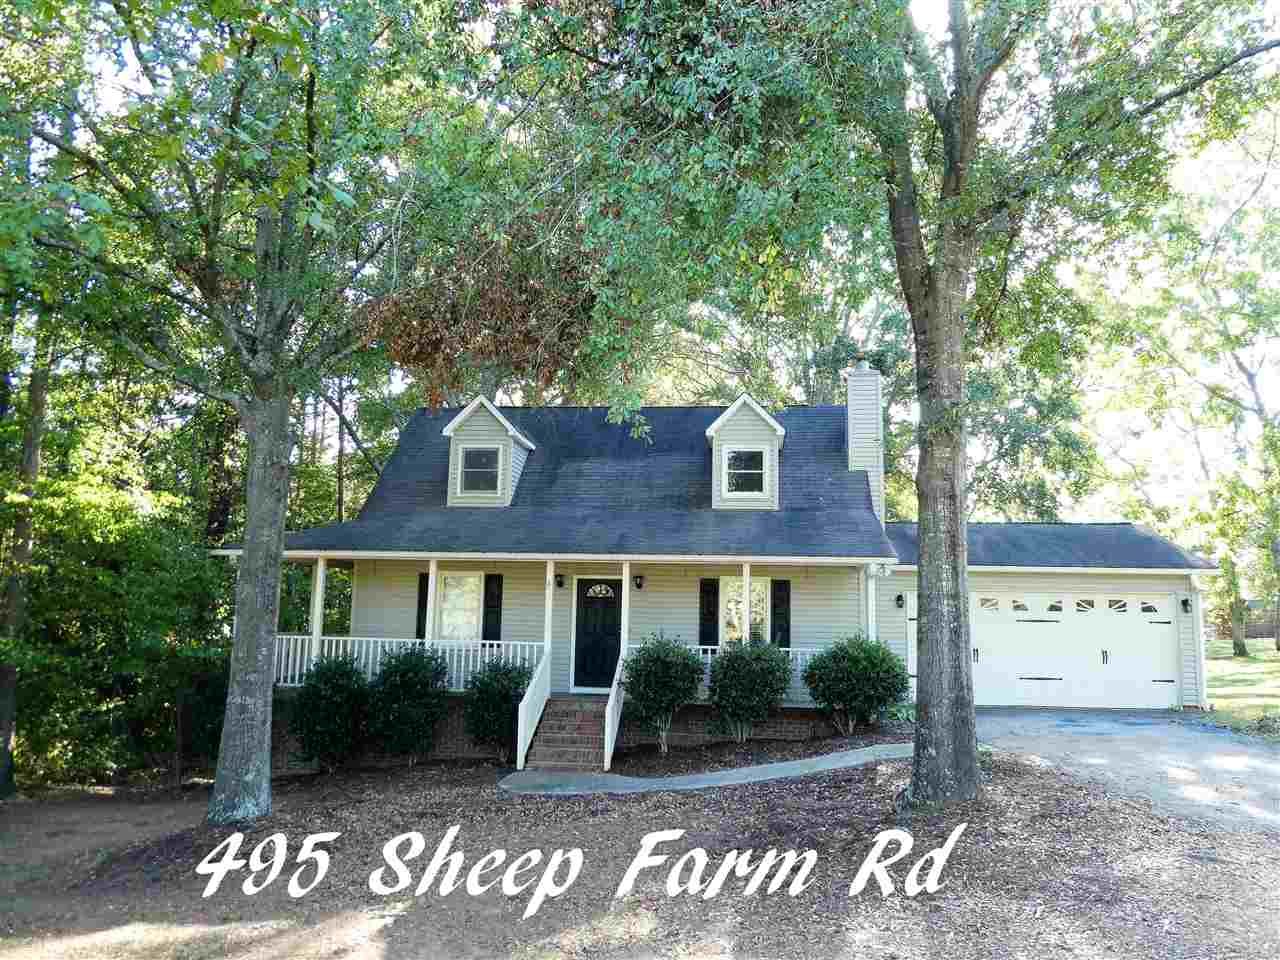 495 Sheep Farm Rd, Seneca, SC 29672